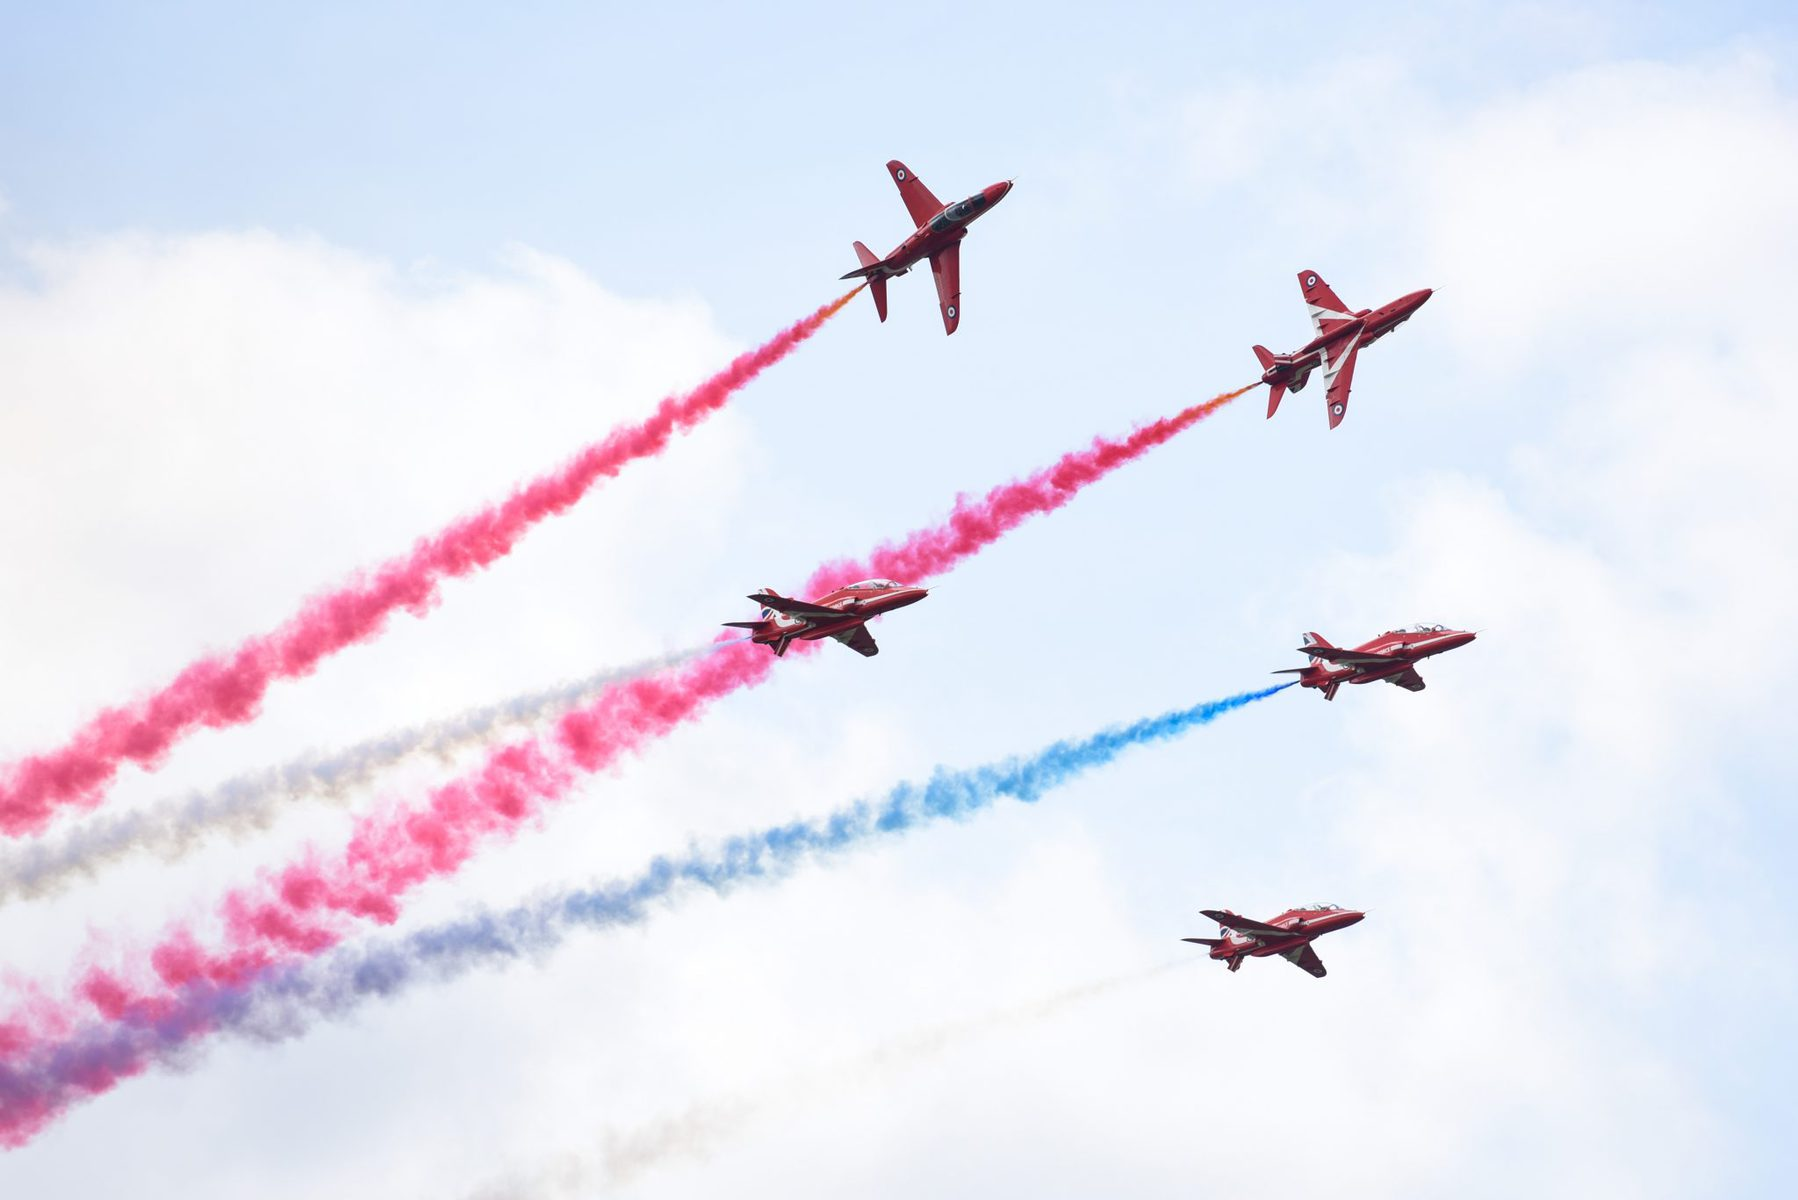 The Red Arrows at Wattisham